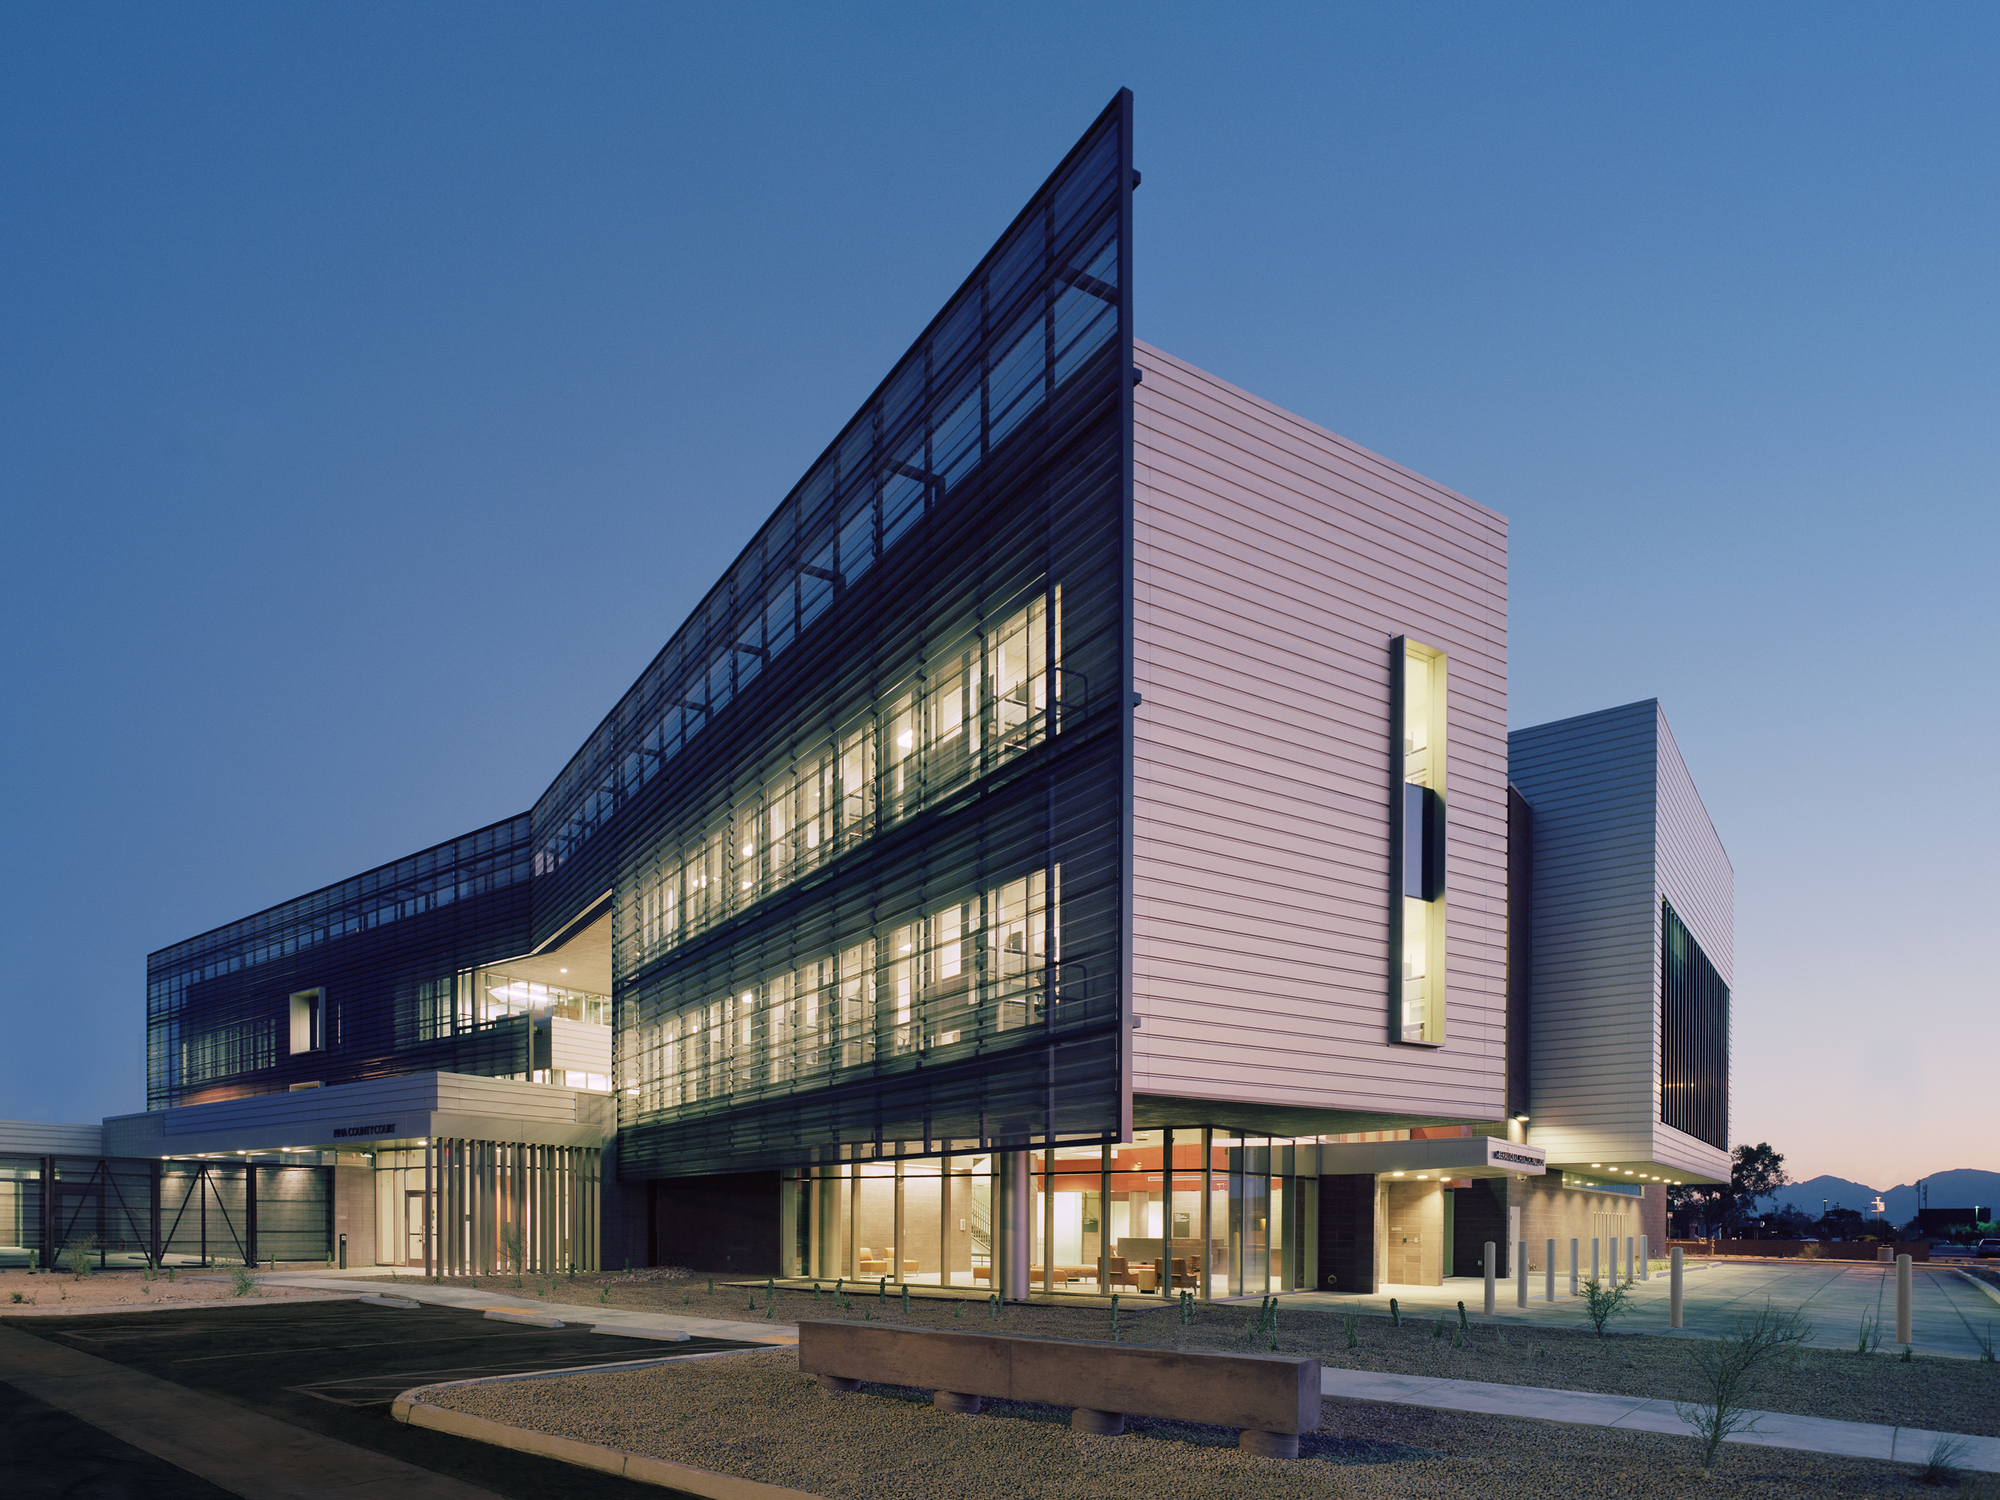 University of arizona medical center south campus cannon for Site design architecture